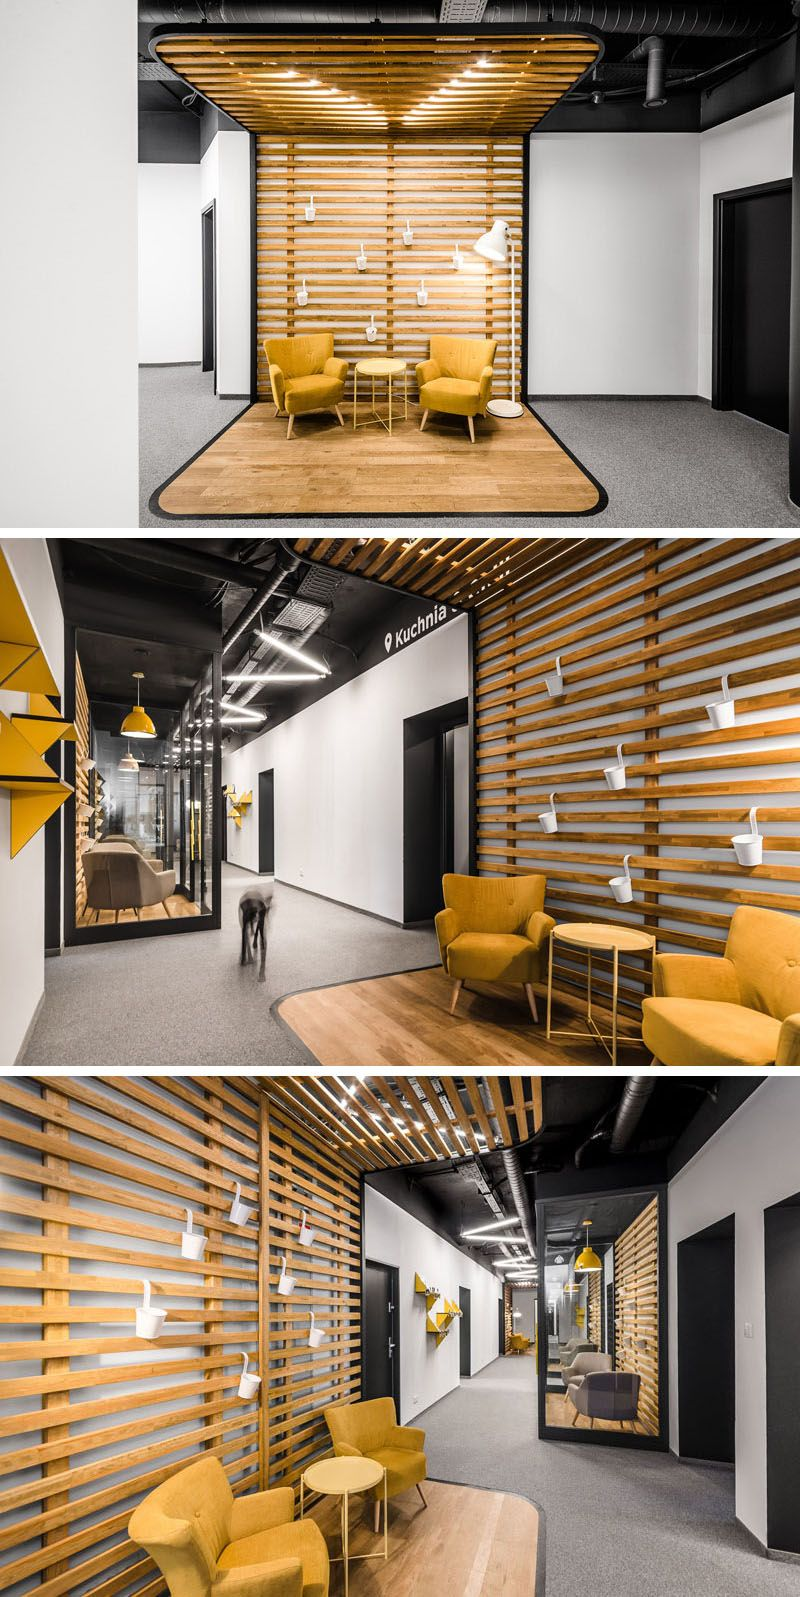 This New Office Interior Uses Wood And Black Frames To Clearly Define Spaces #hallway